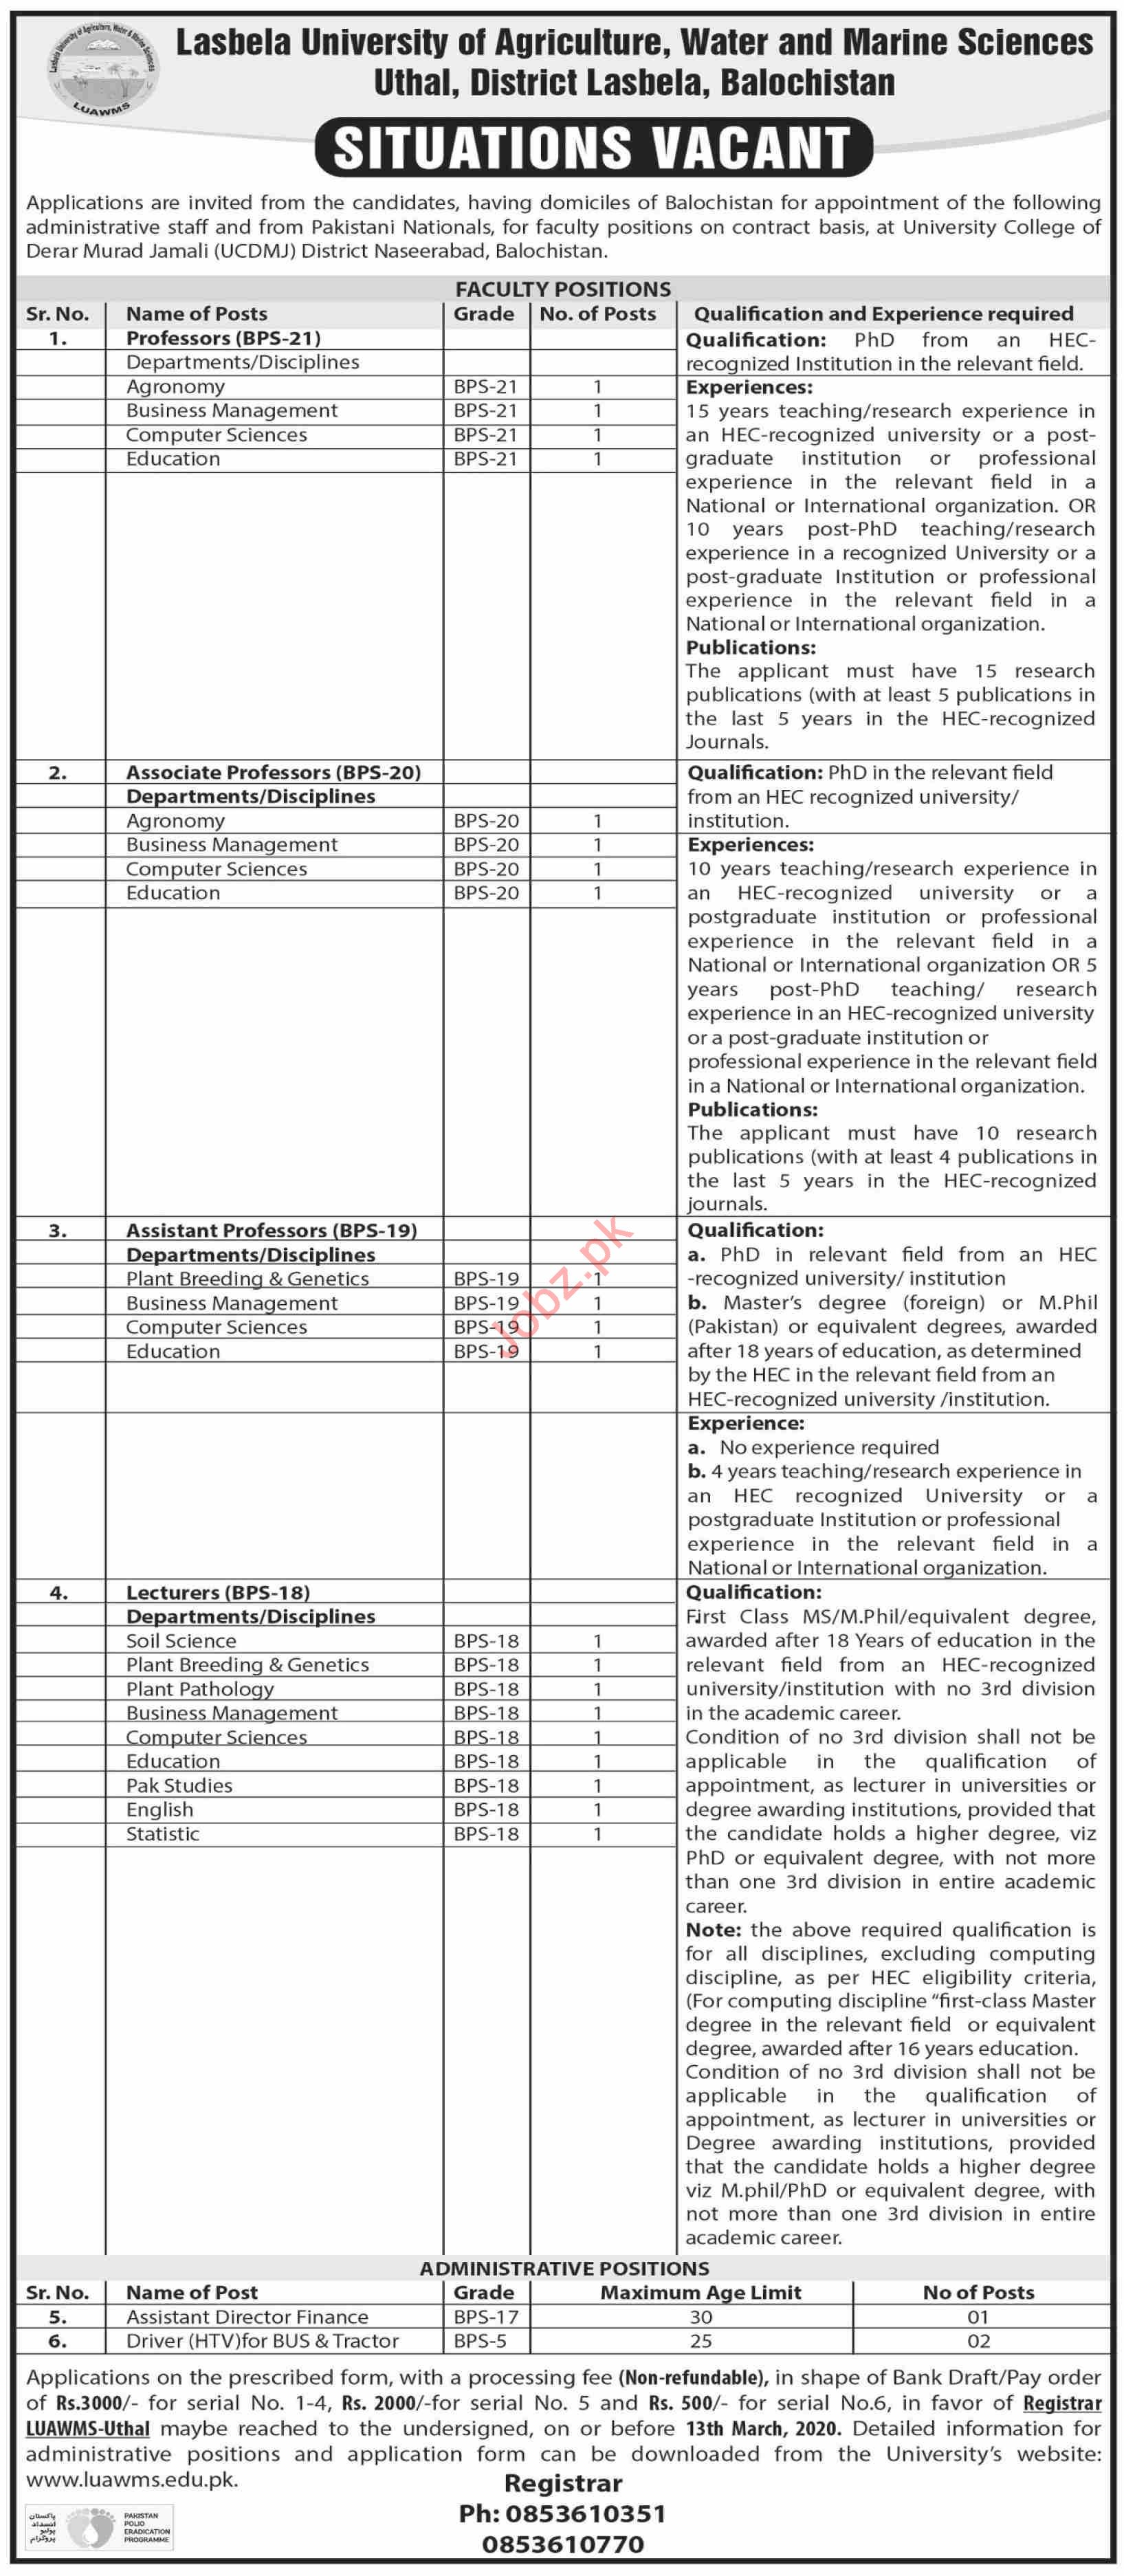 Lasbela University of Agriculture LUAWMS Jobs 2020